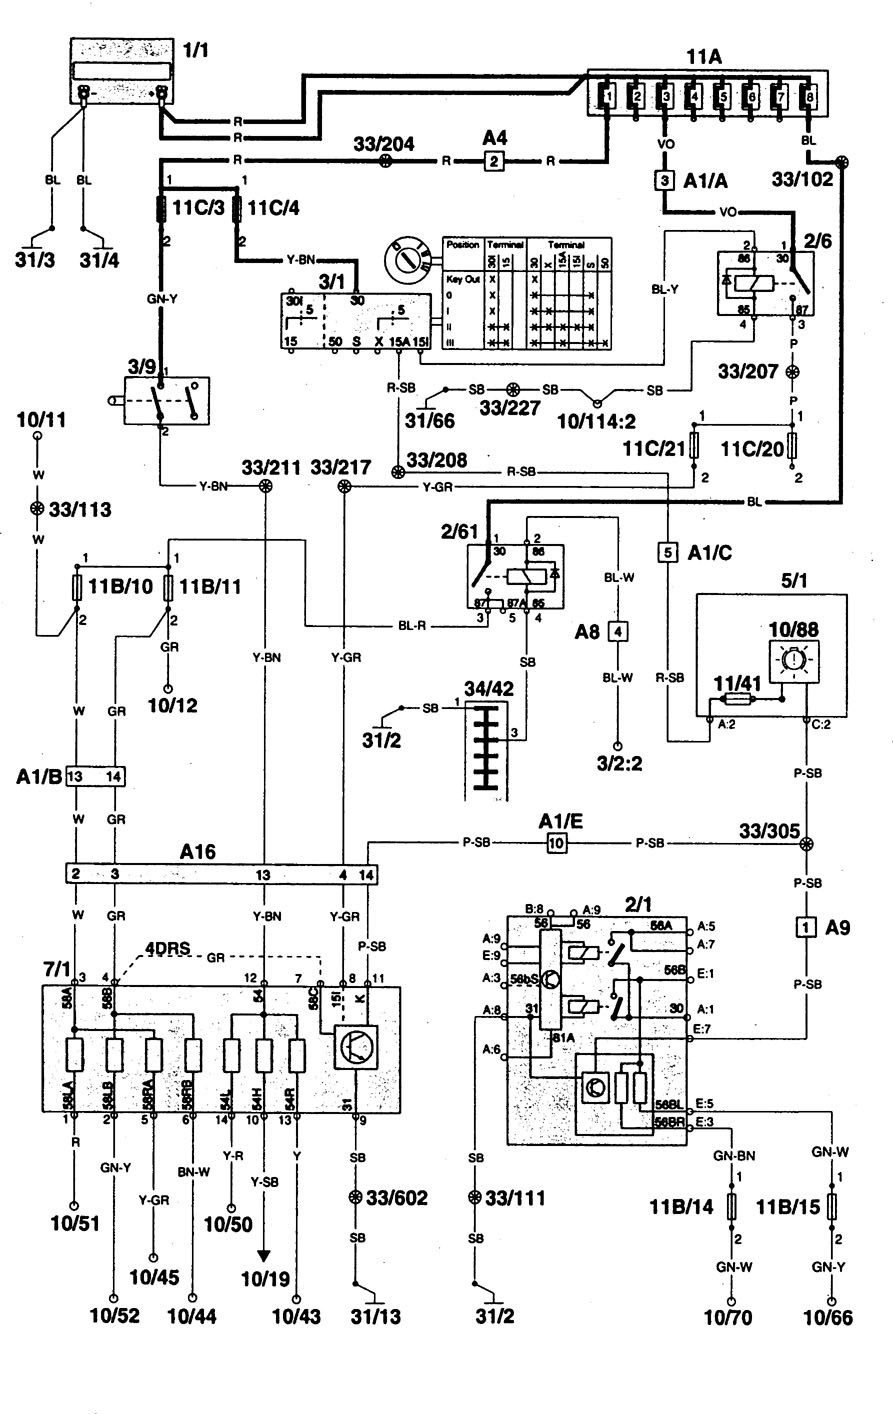 volvo 960 1996 1997 wiring diagrams lamp out warning rh carknowledge info Volvo Engine Diagram 2000 Volvo S80 Engine Diagram